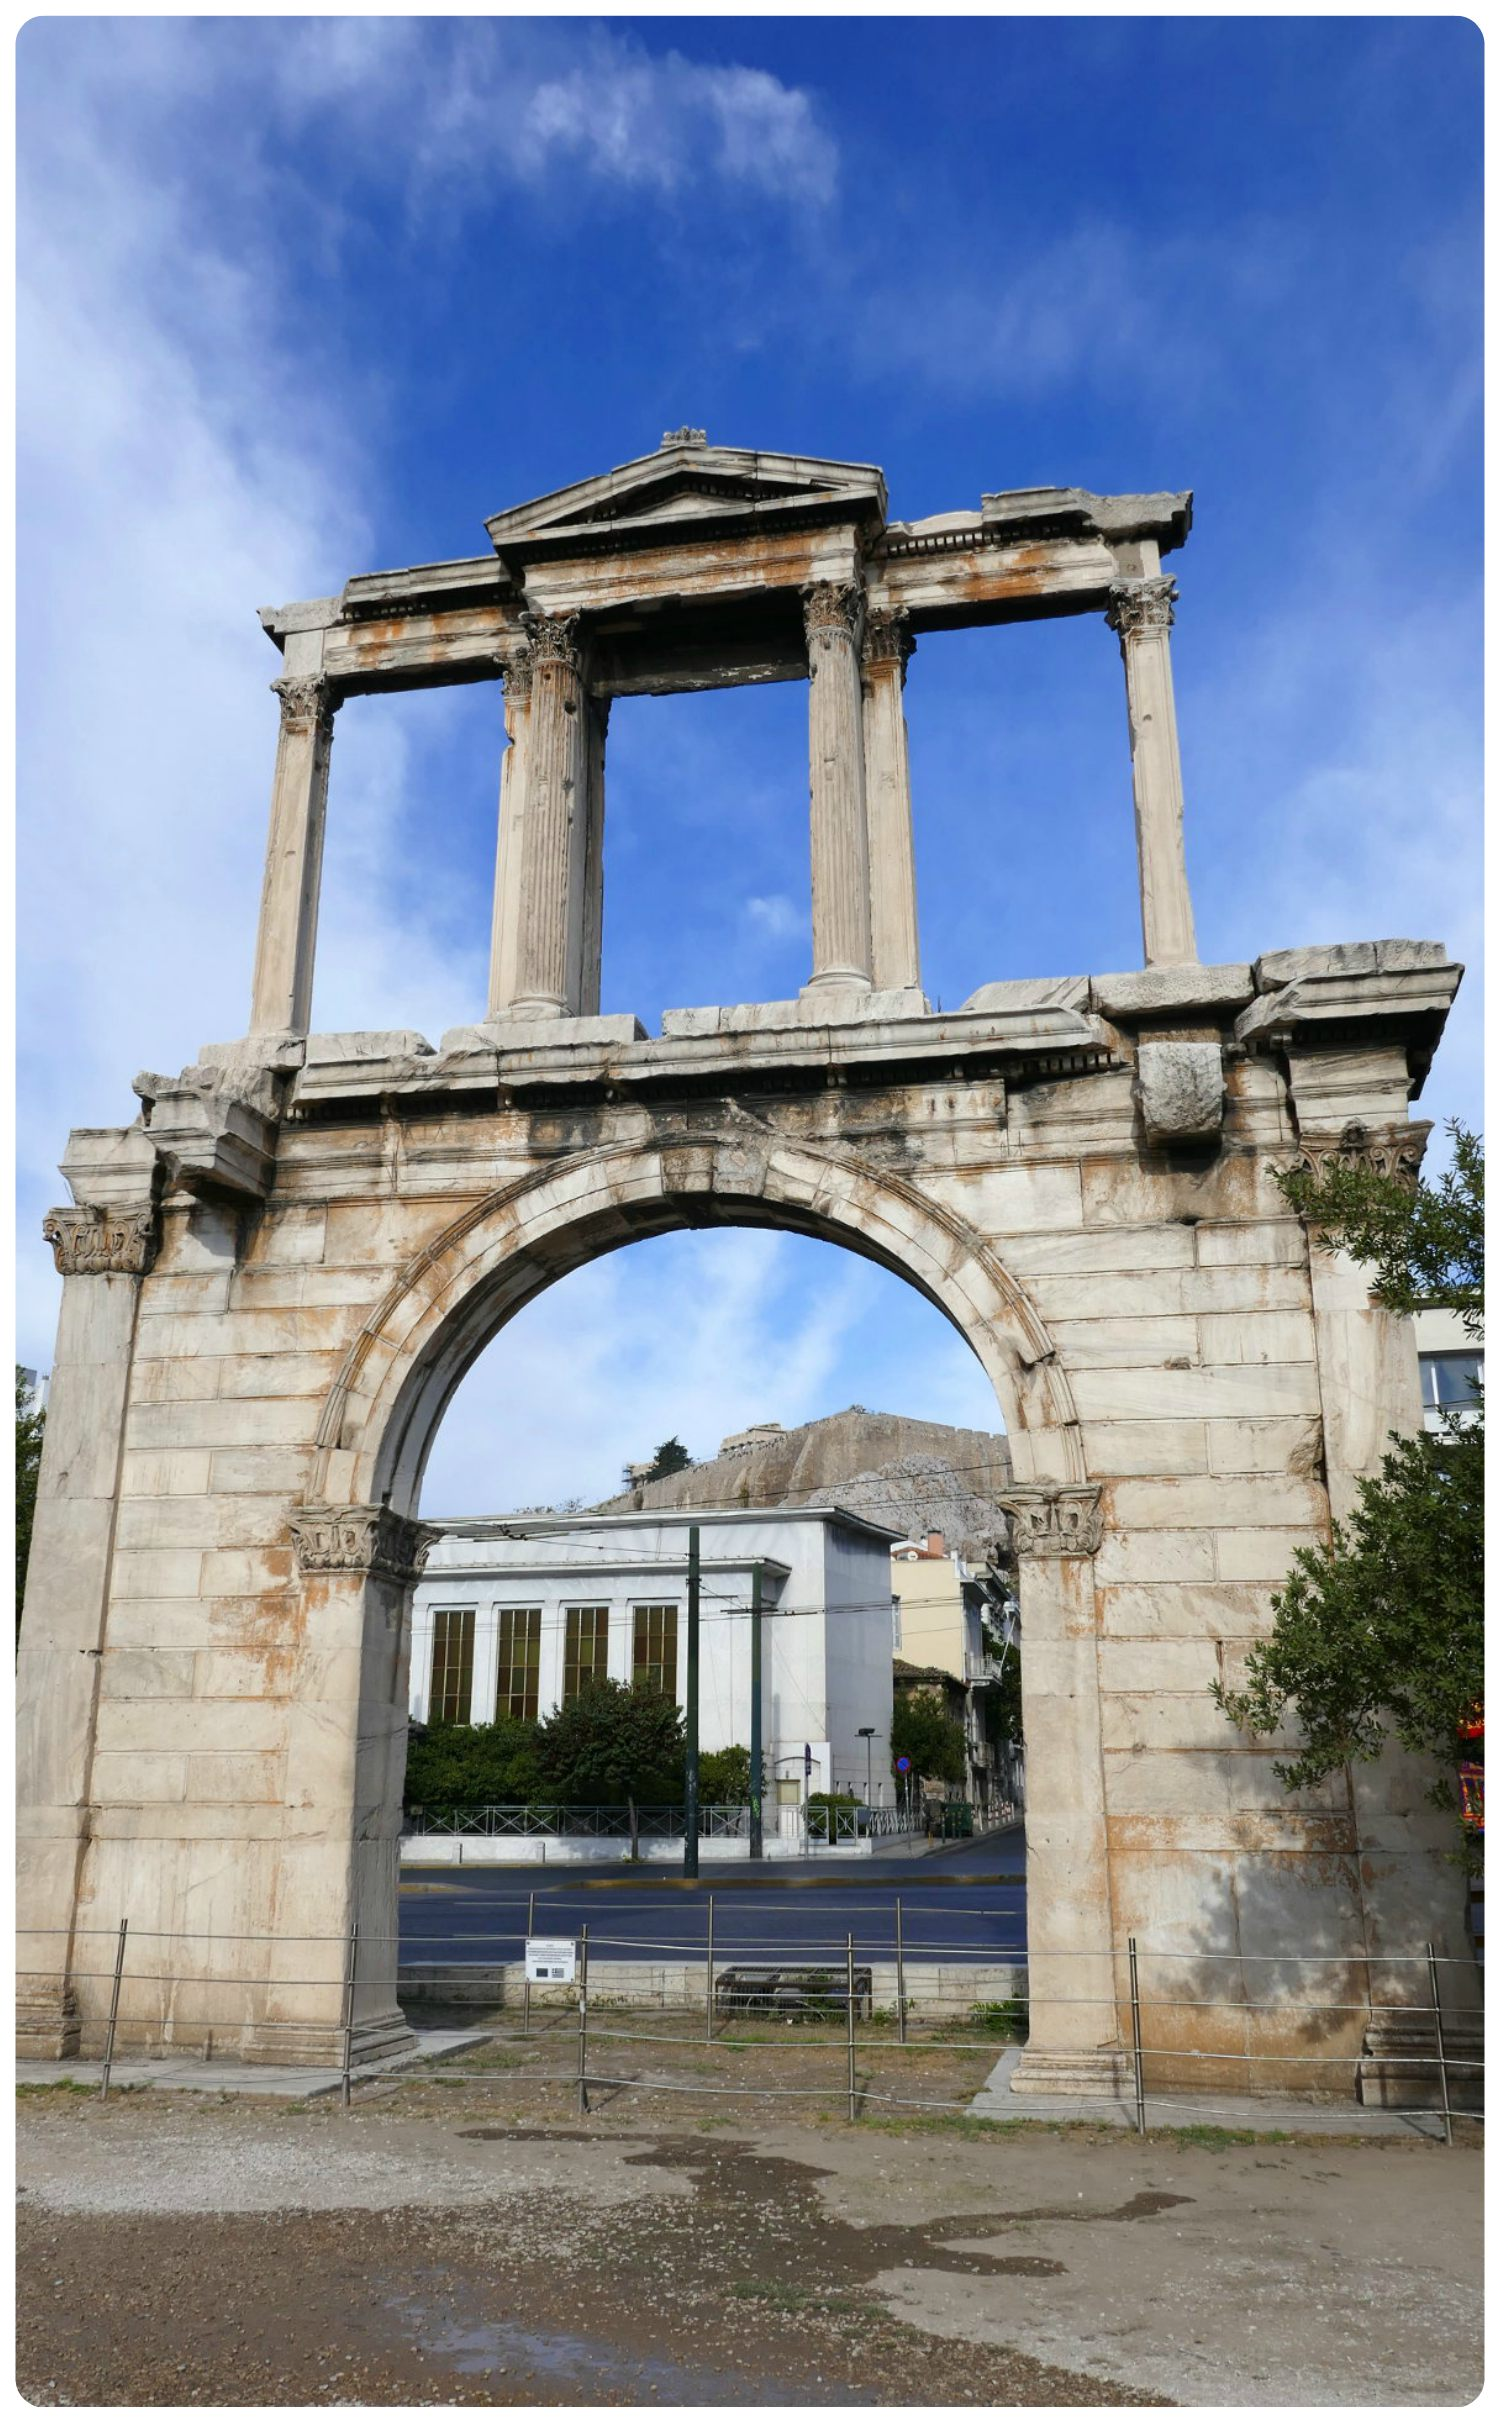 While you can no longer pass beneath the Arch of Hadrian, it's well worth the visit if you're in Athens!